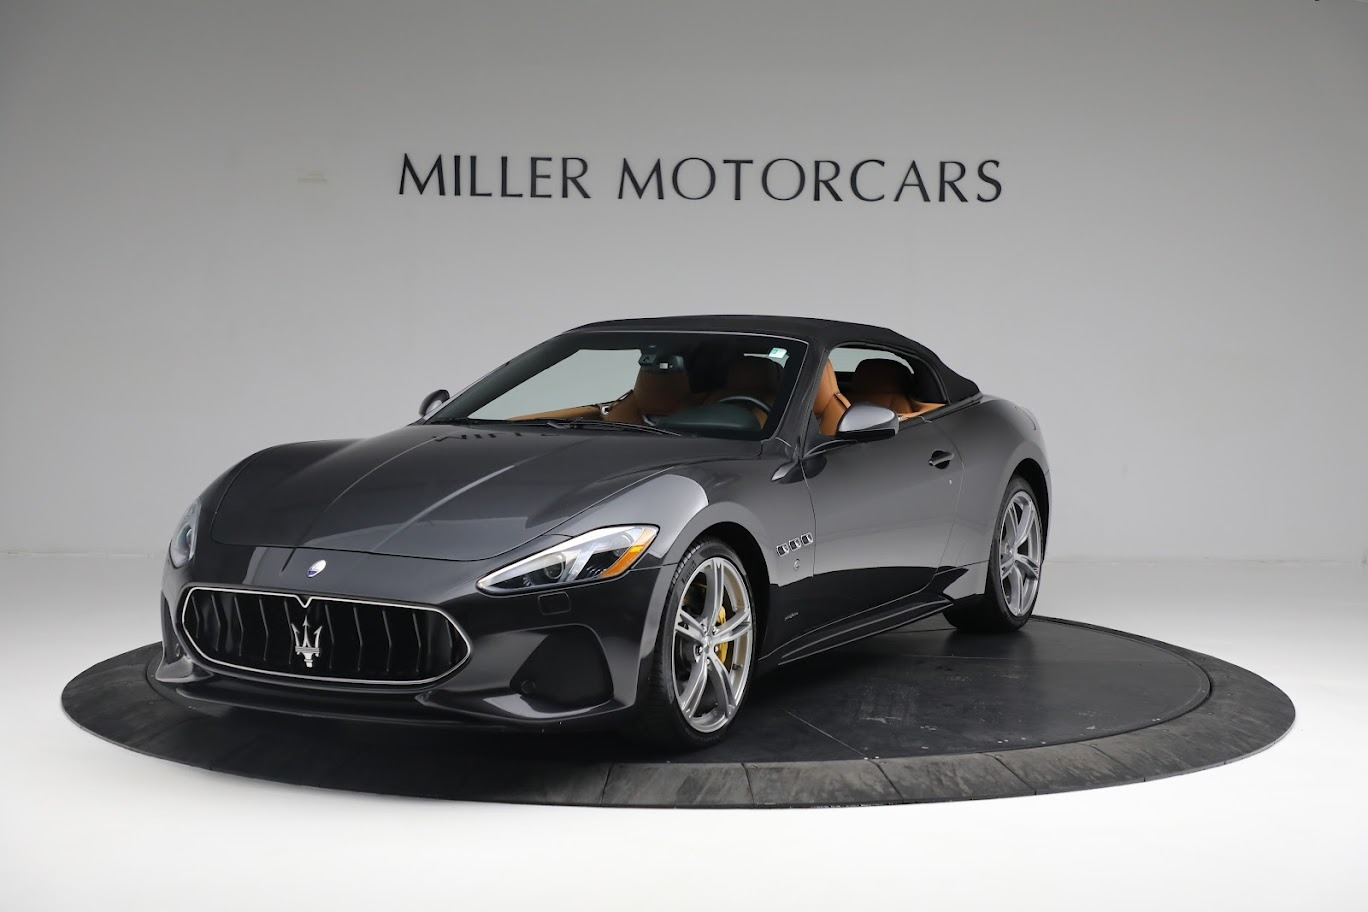 New 2019 Maserati GranTurismo Sport Convertible for sale Sold at Rolls-Royce Motor Cars Greenwich in Greenwich CT 06830 1